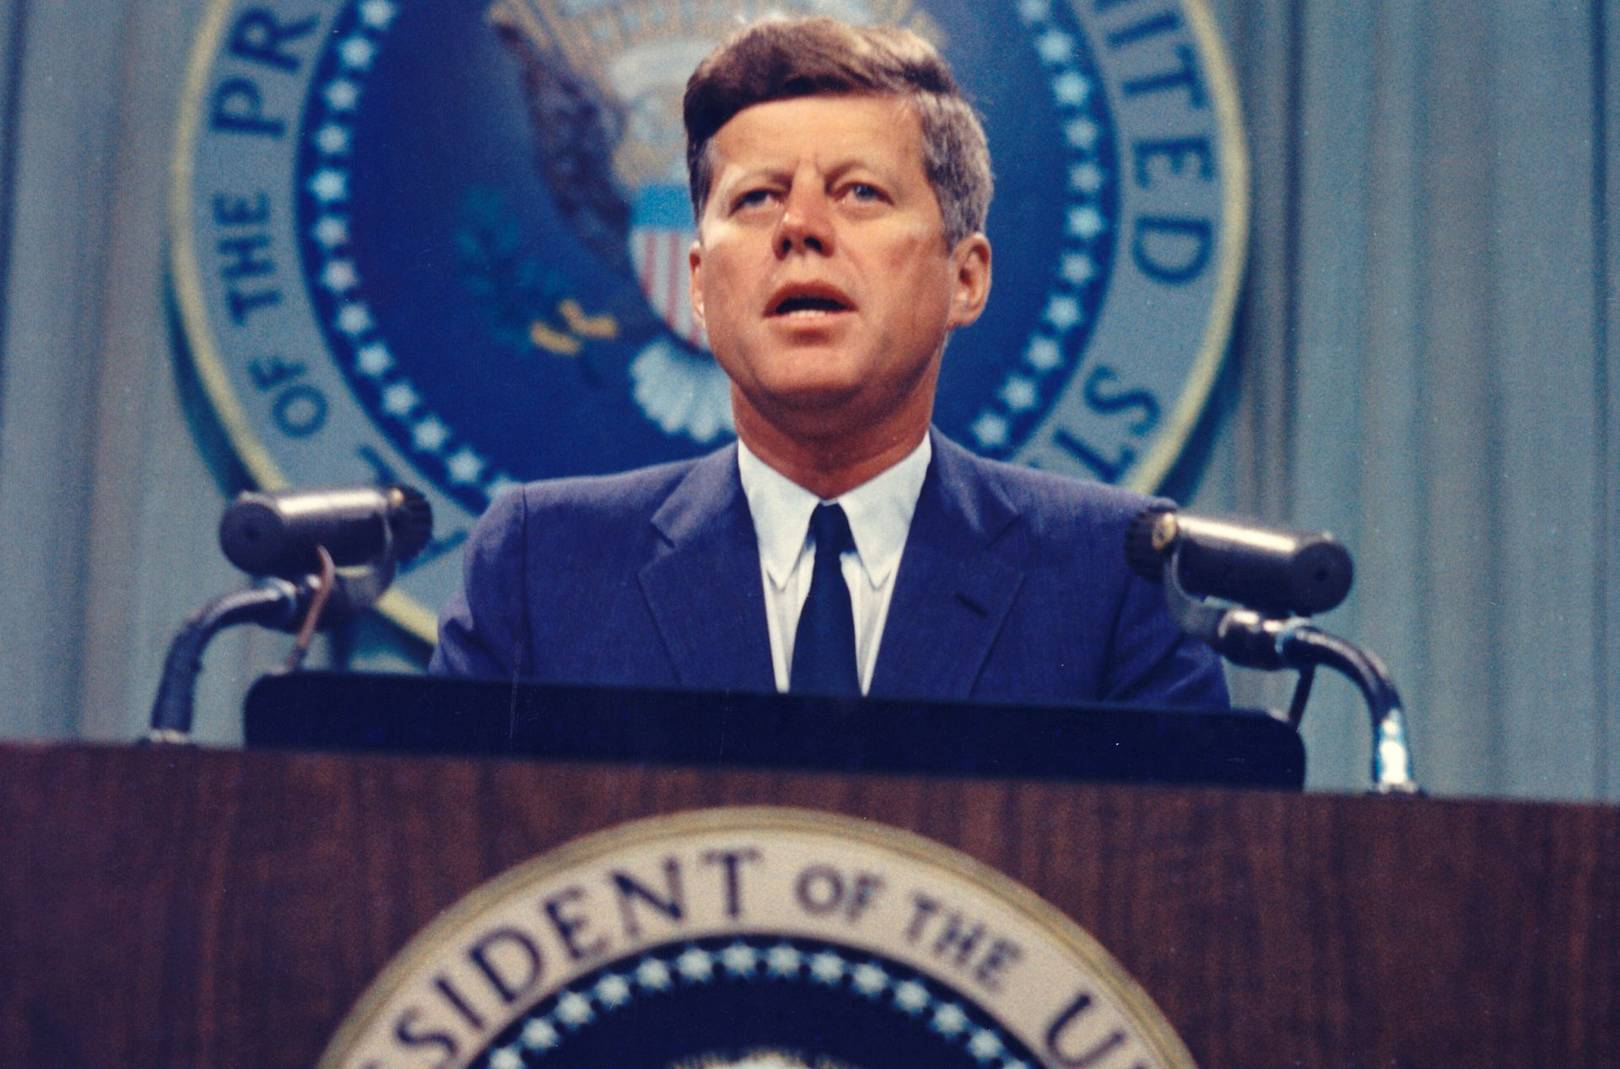 Assassinat de John F. Kennedy Wikip dia